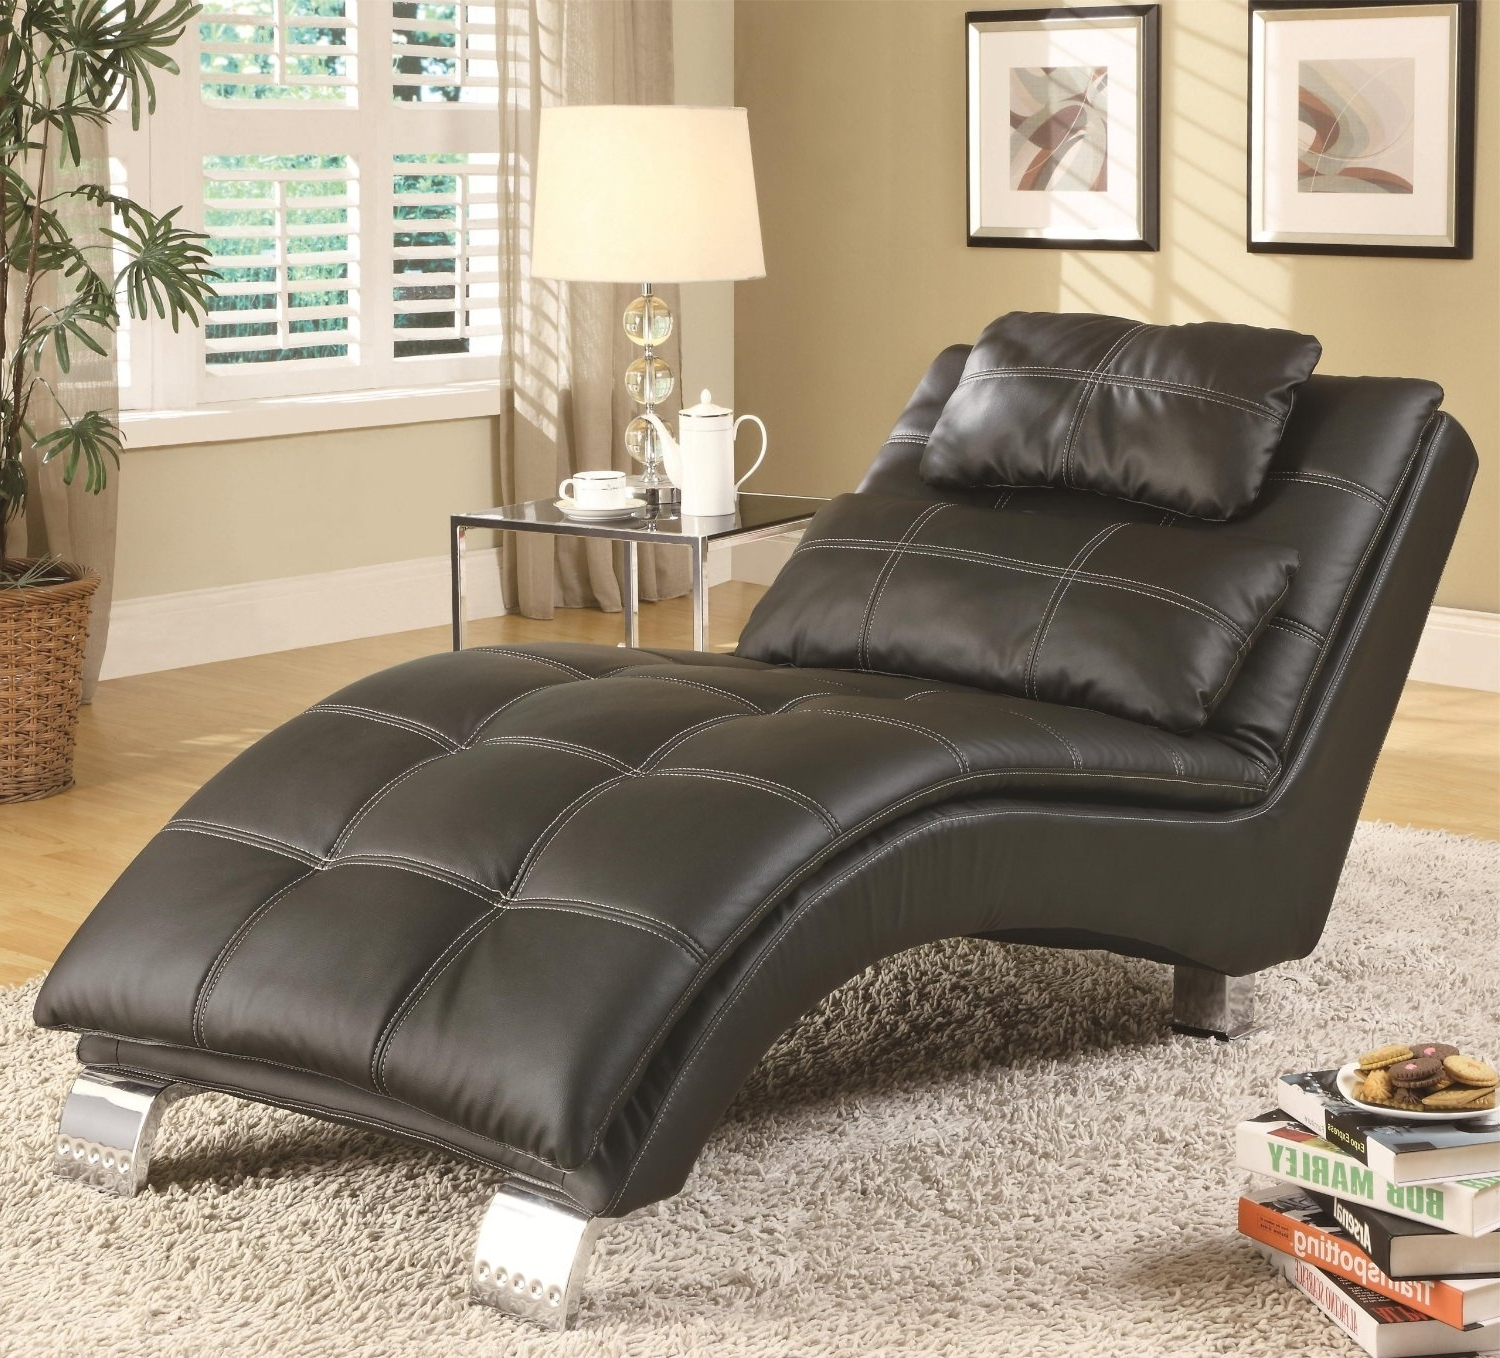 Chaise Lounge Chair Indoor • Lounge Chairs Ideas Intended For Recent Modern Indoors Chaise Lounge Chairs (View 2 of 15)